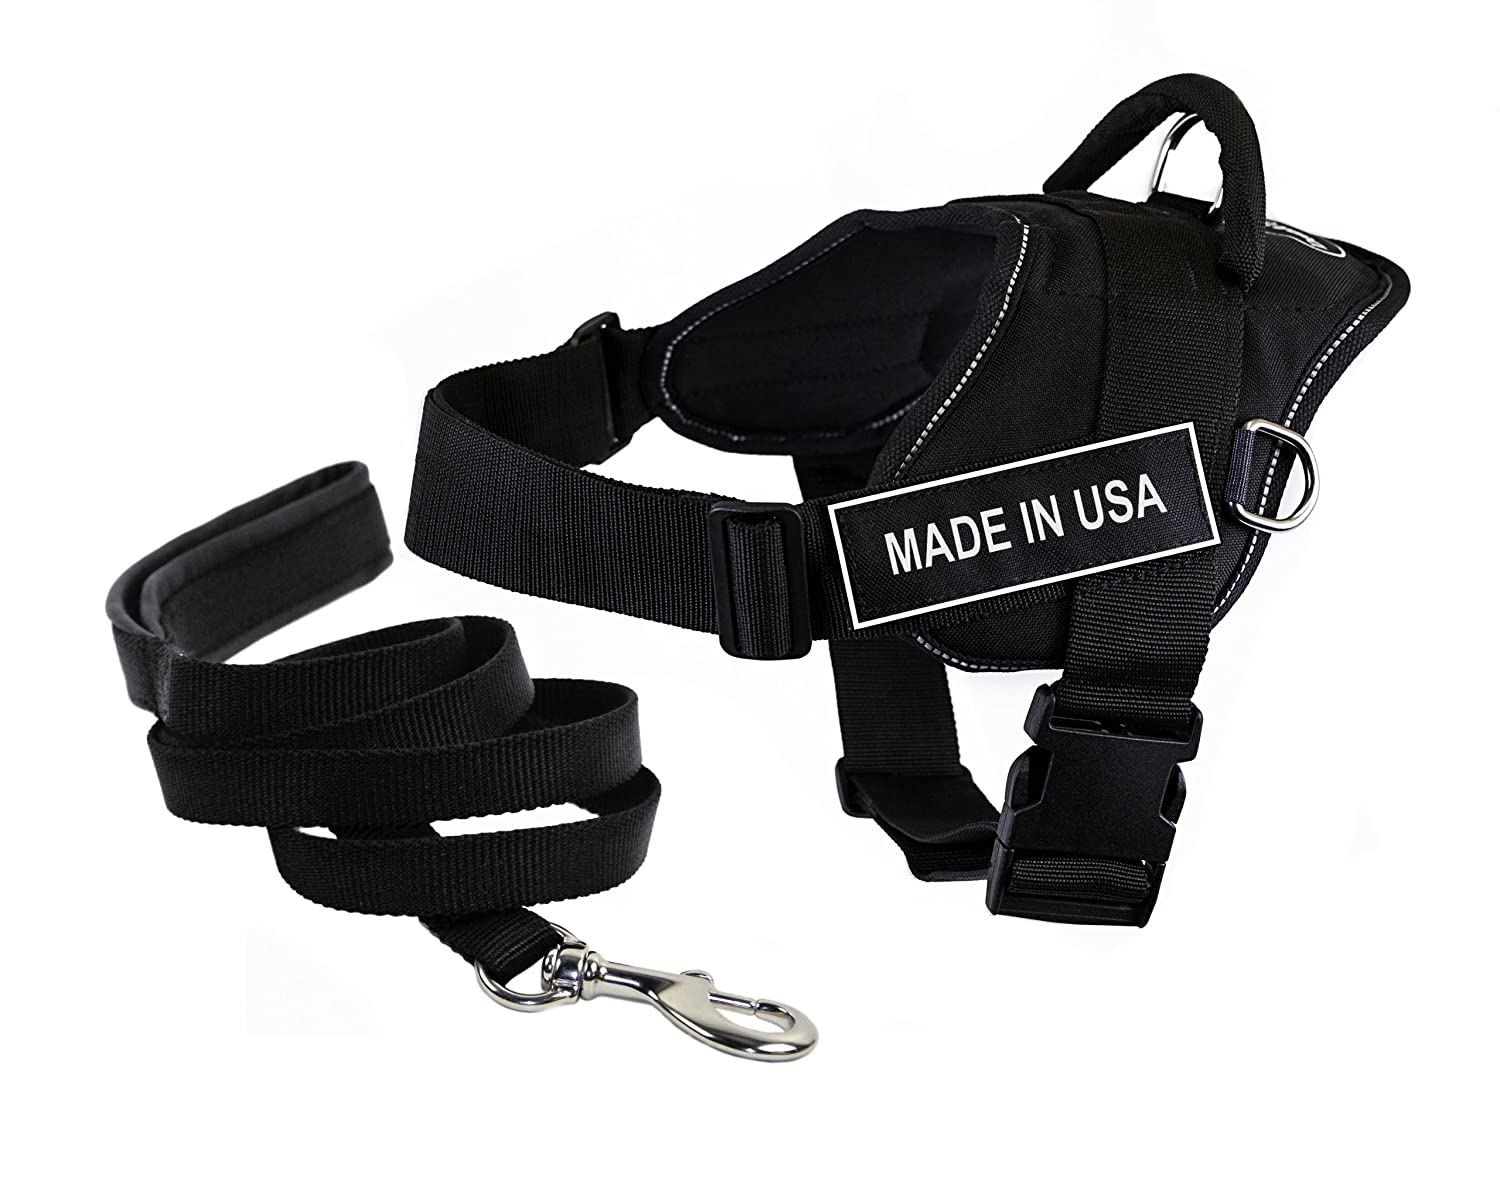 Dean & Tyler DT Fun Harness Made Made Made in USA con Finiture Riflettenti, Grande, e 1,8 m Padded Puppy guinzaglio. 400263